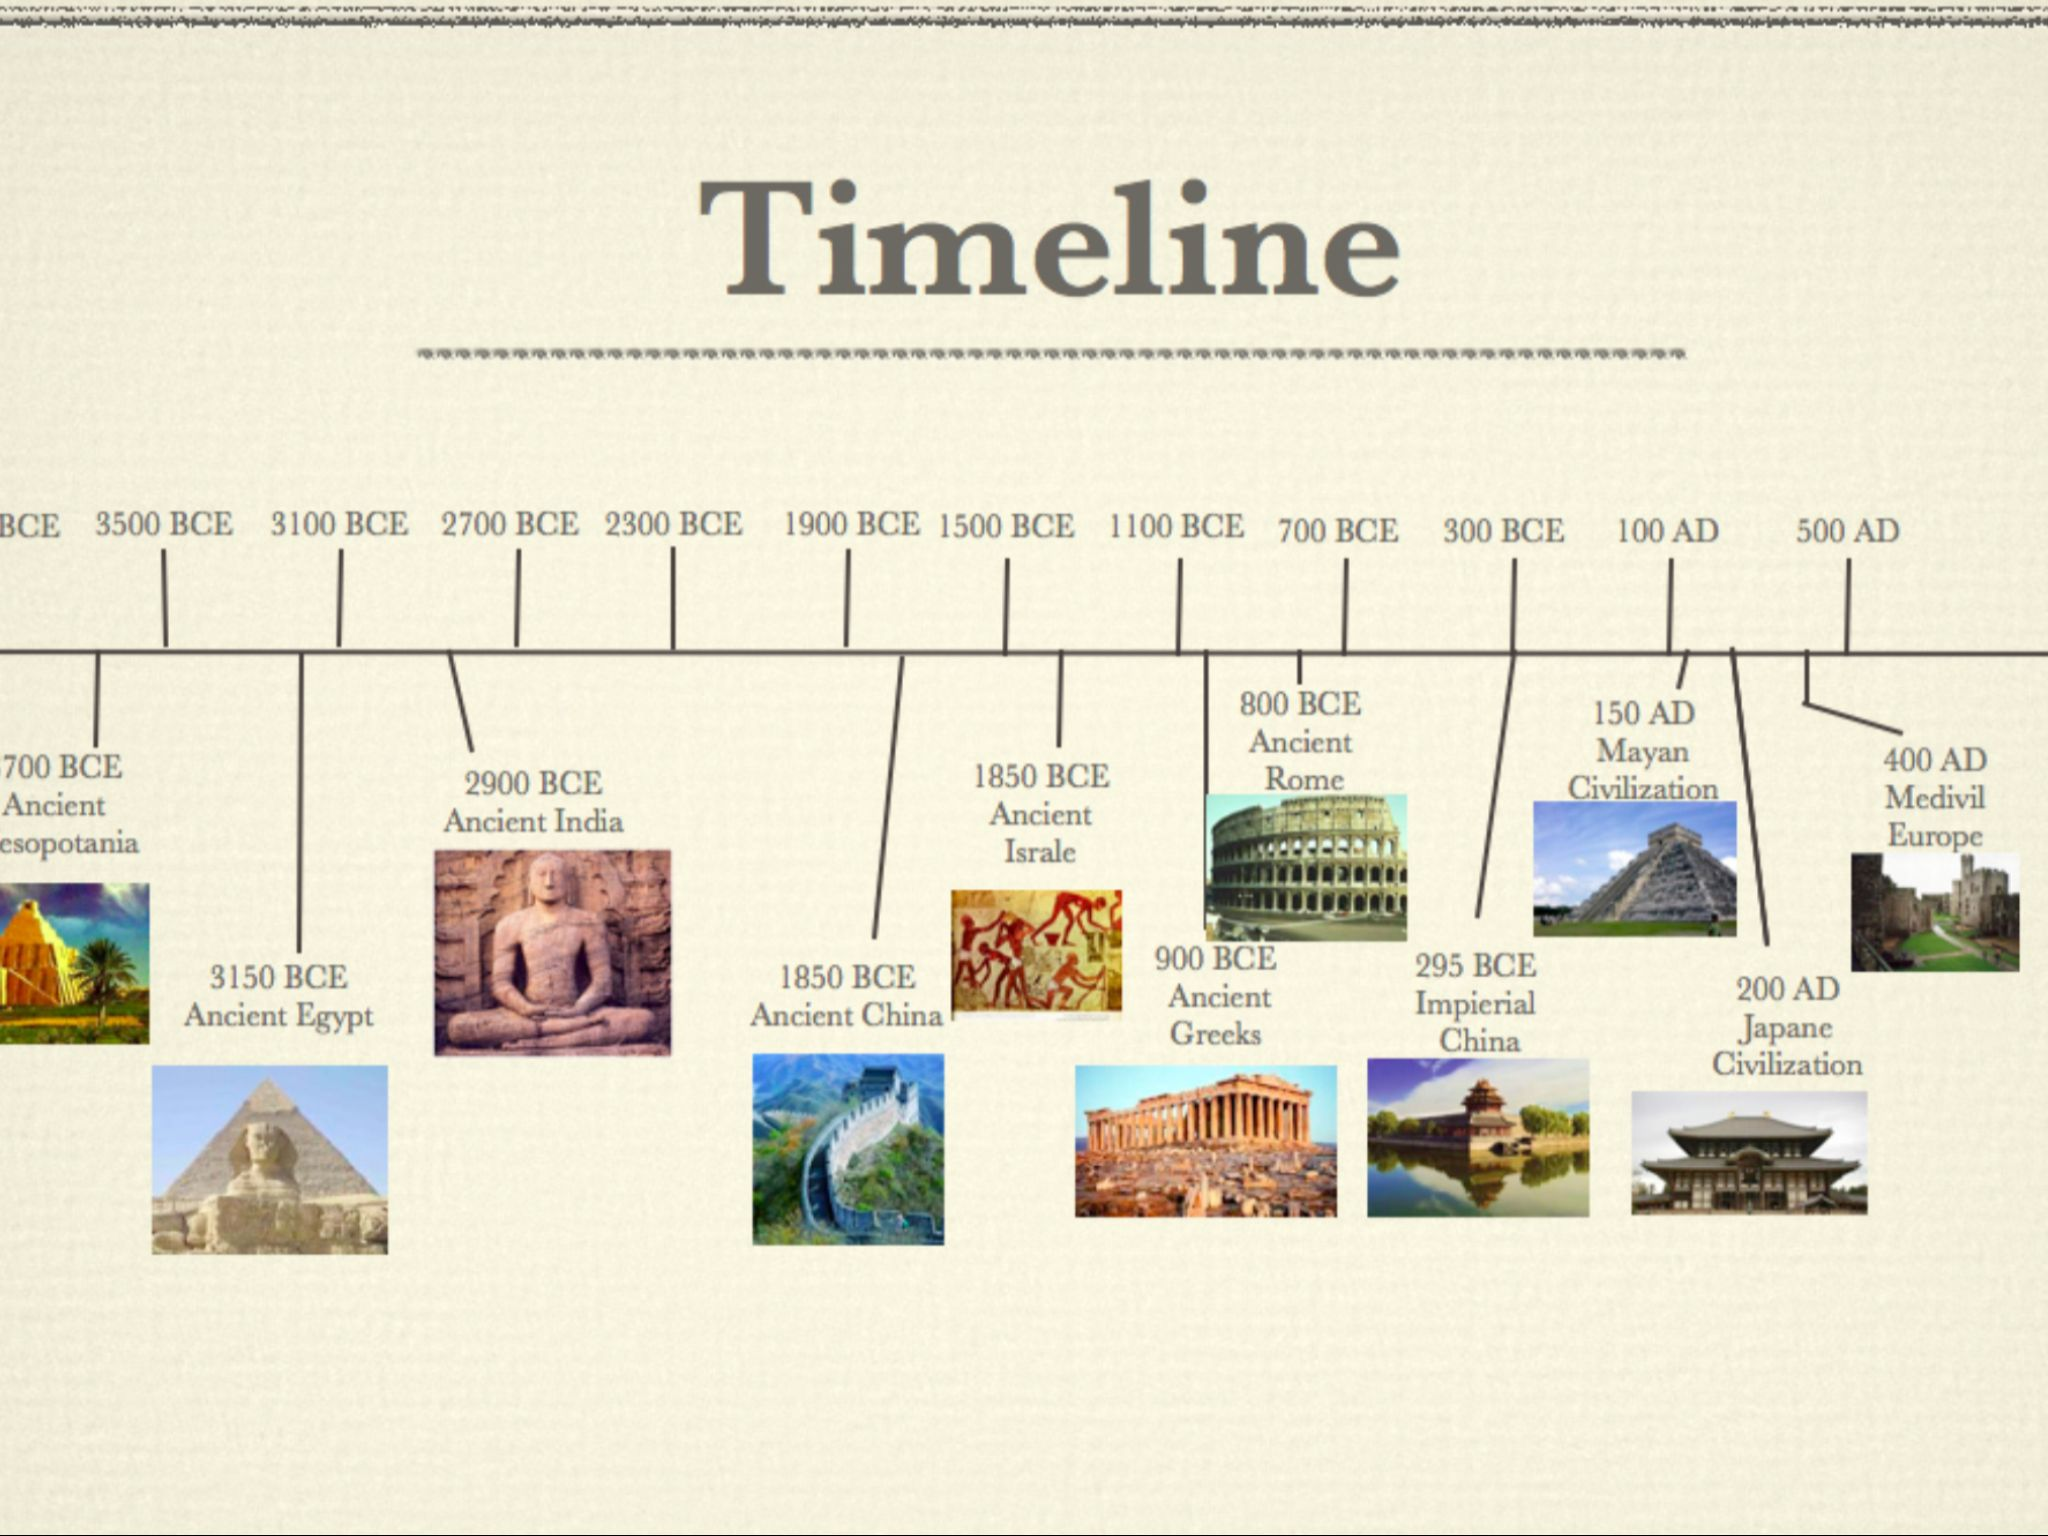 Timeline Of Civilizations With Images